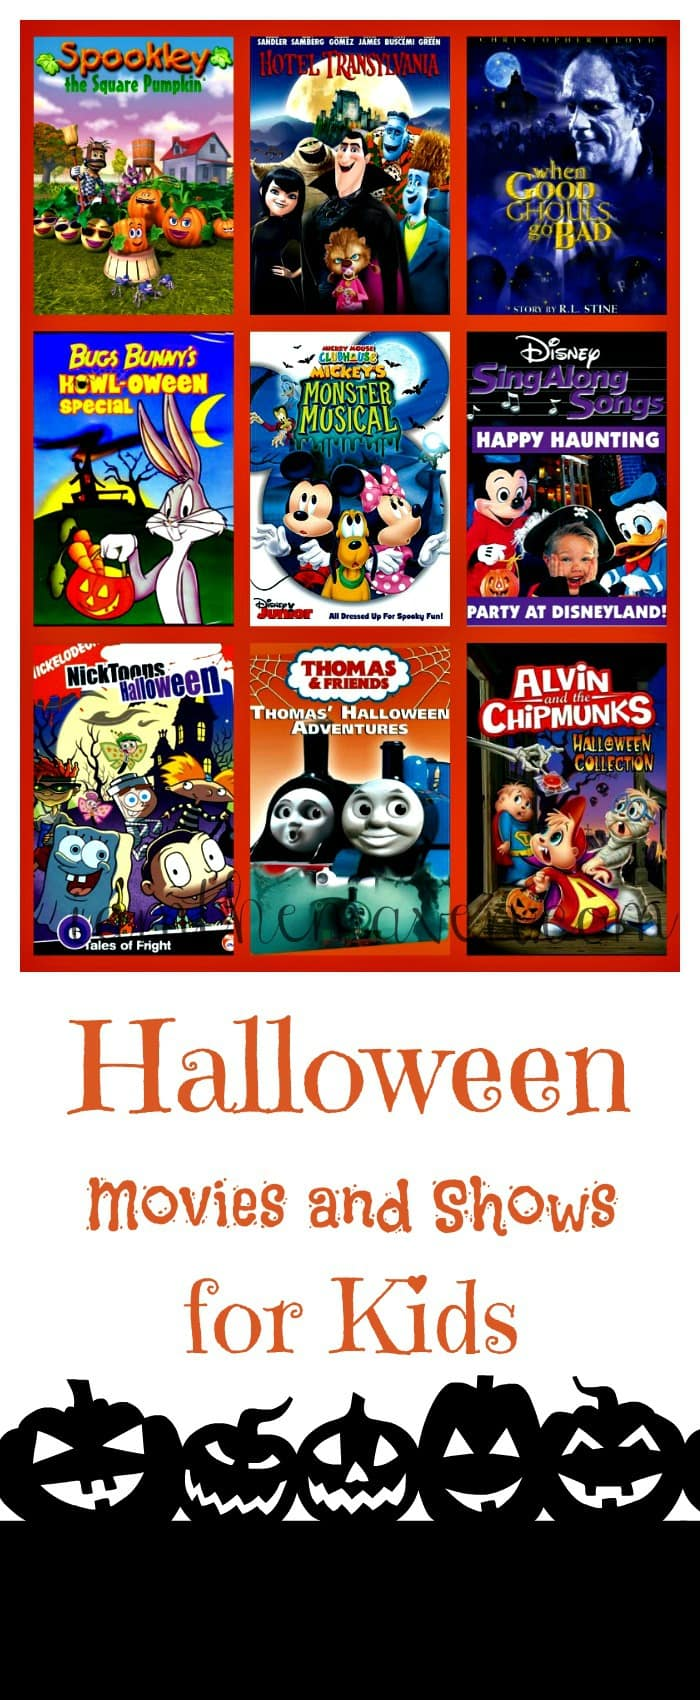 halloween movies and shows for kids | i am the maven®